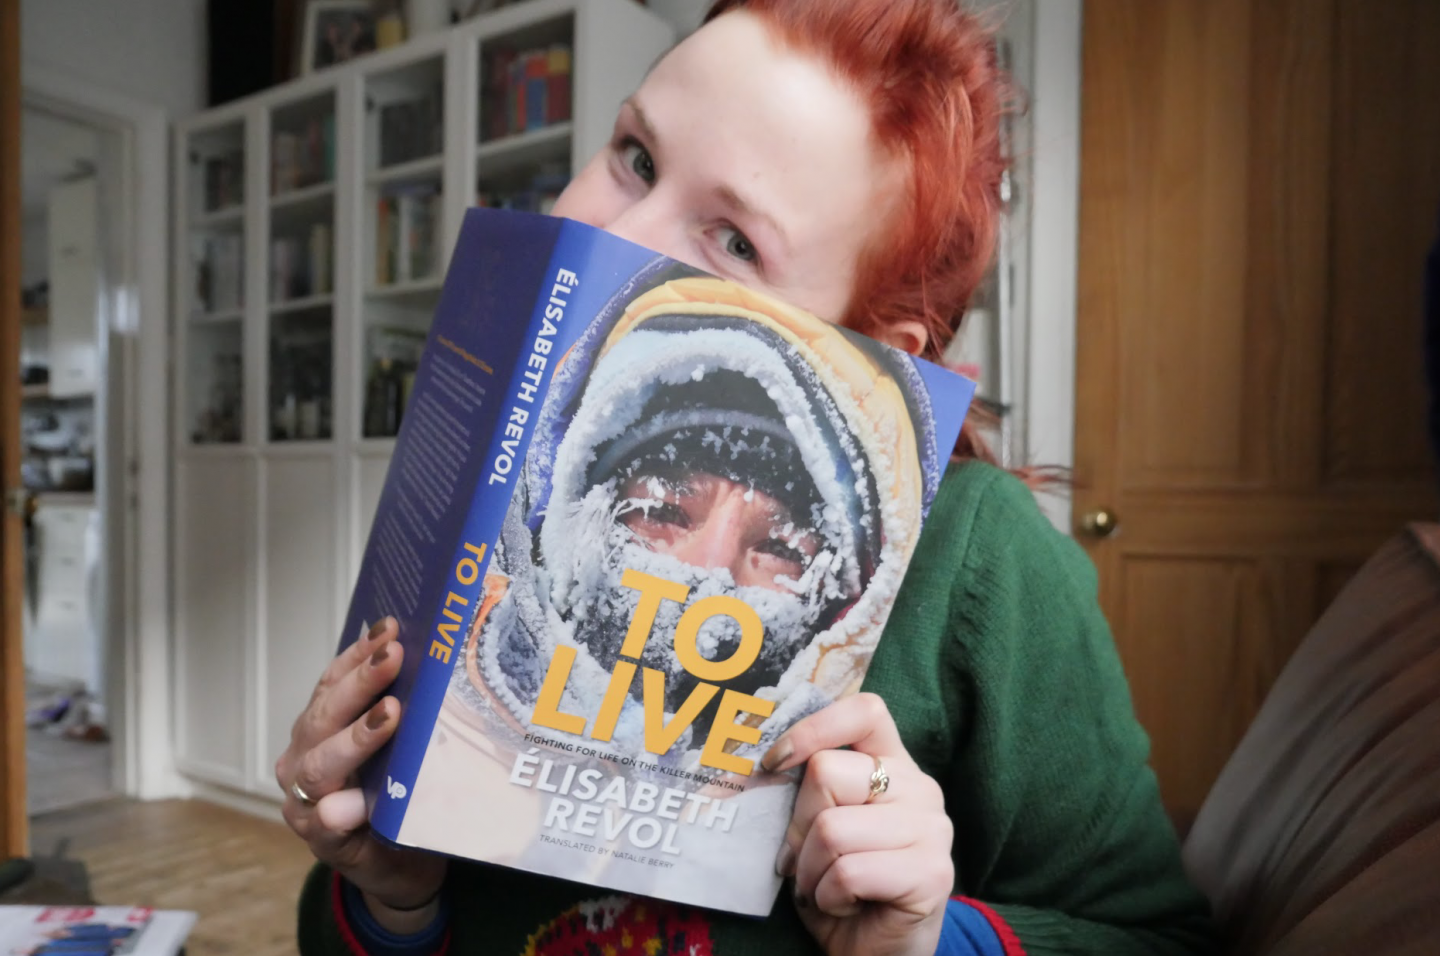 Book Review: To Live by Élisabeth Revol